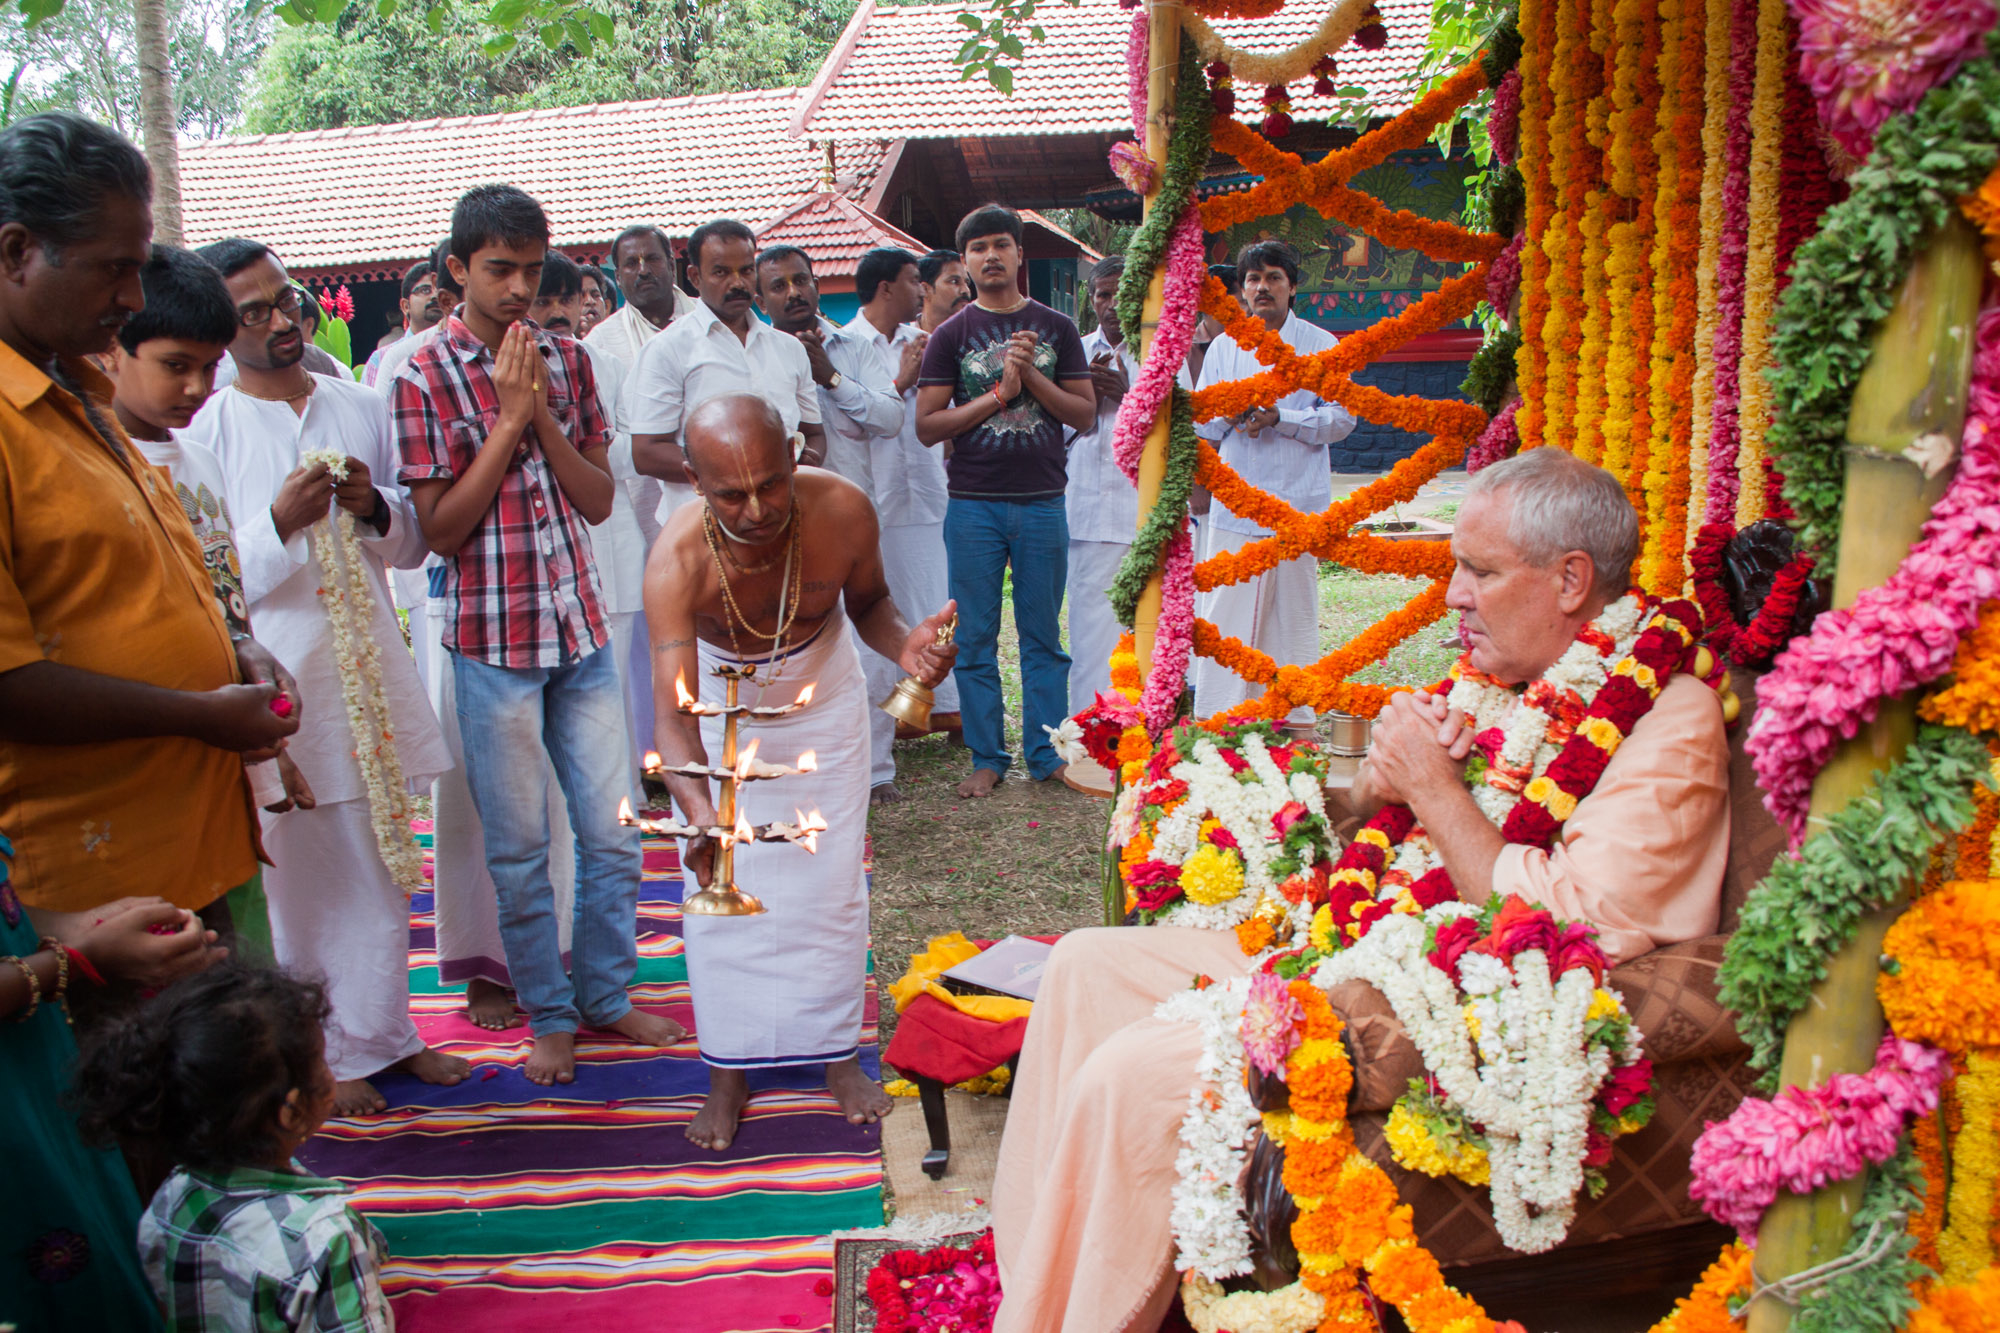 The guru accepting offerings from his disciples. Photo: